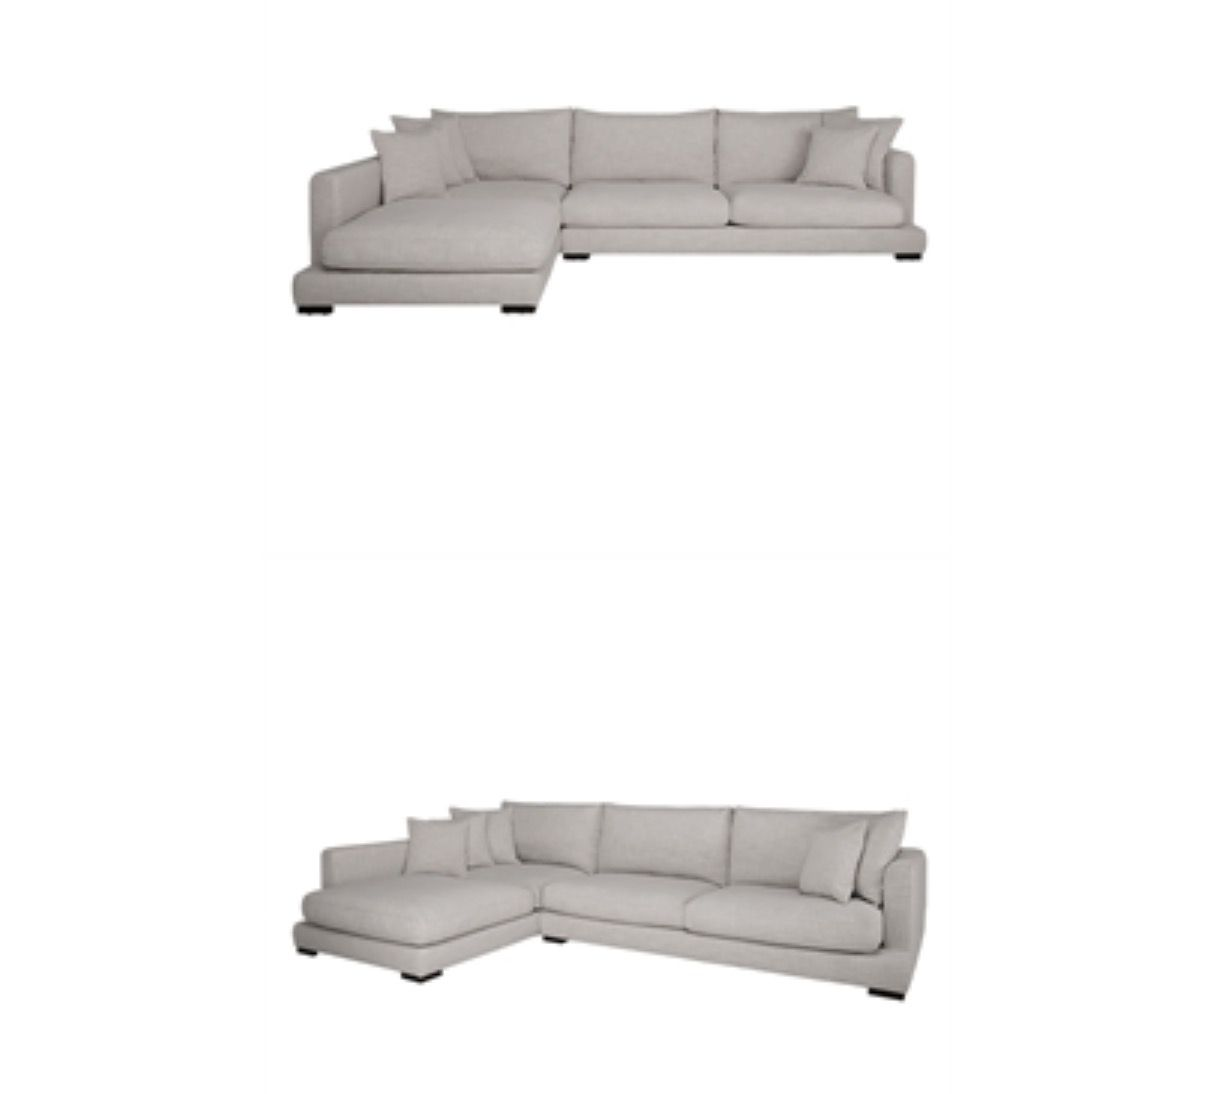 Freedom Furniture Sofa Hamilton Modular Sofa By Freedom Furniture Living Space